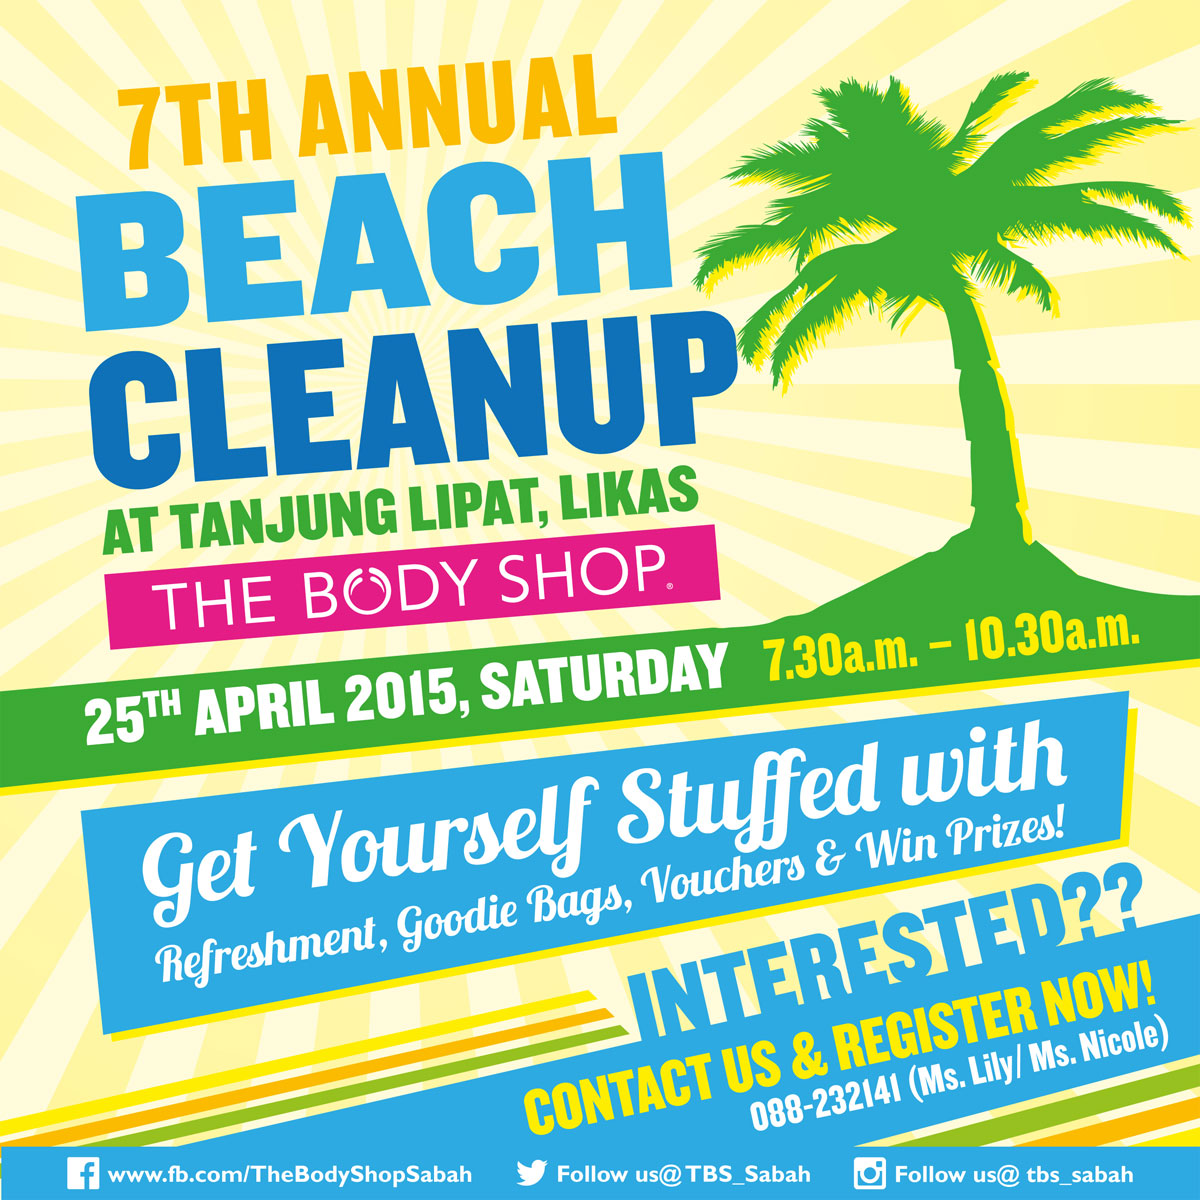 The Body Shop 7th Annual Beach Cleanup Invitation Post Design 05